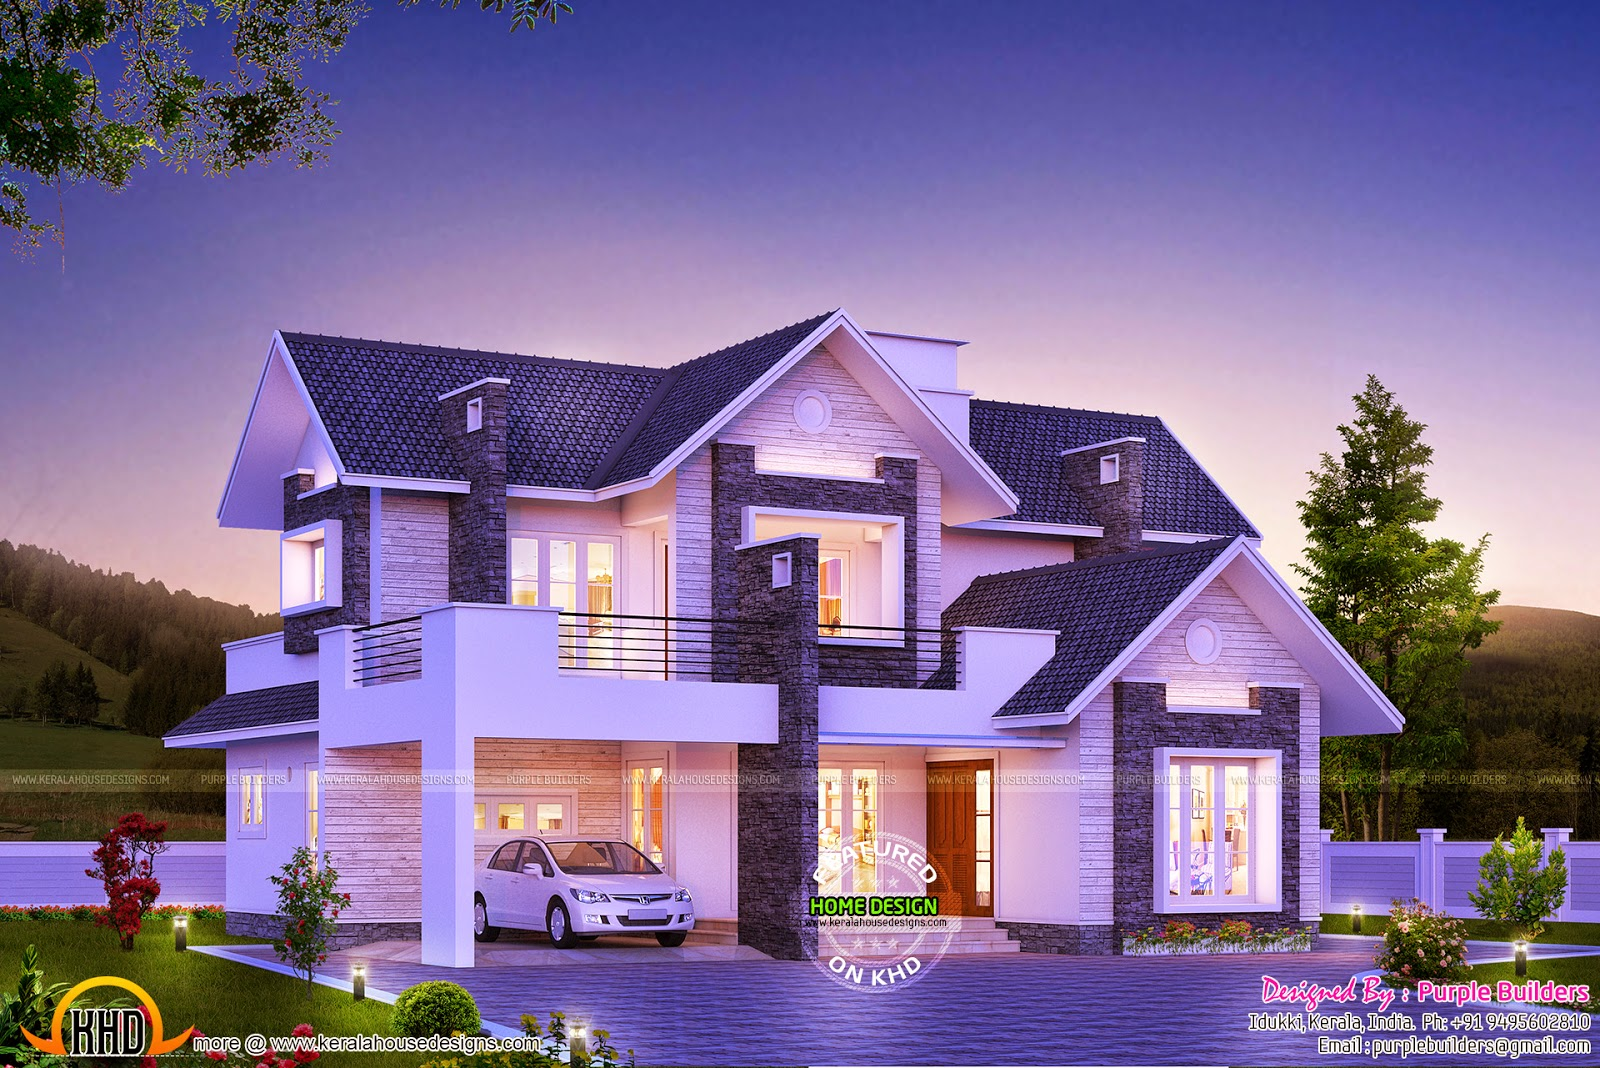 Super dream home kerala home design and floor plans Home builders house plans